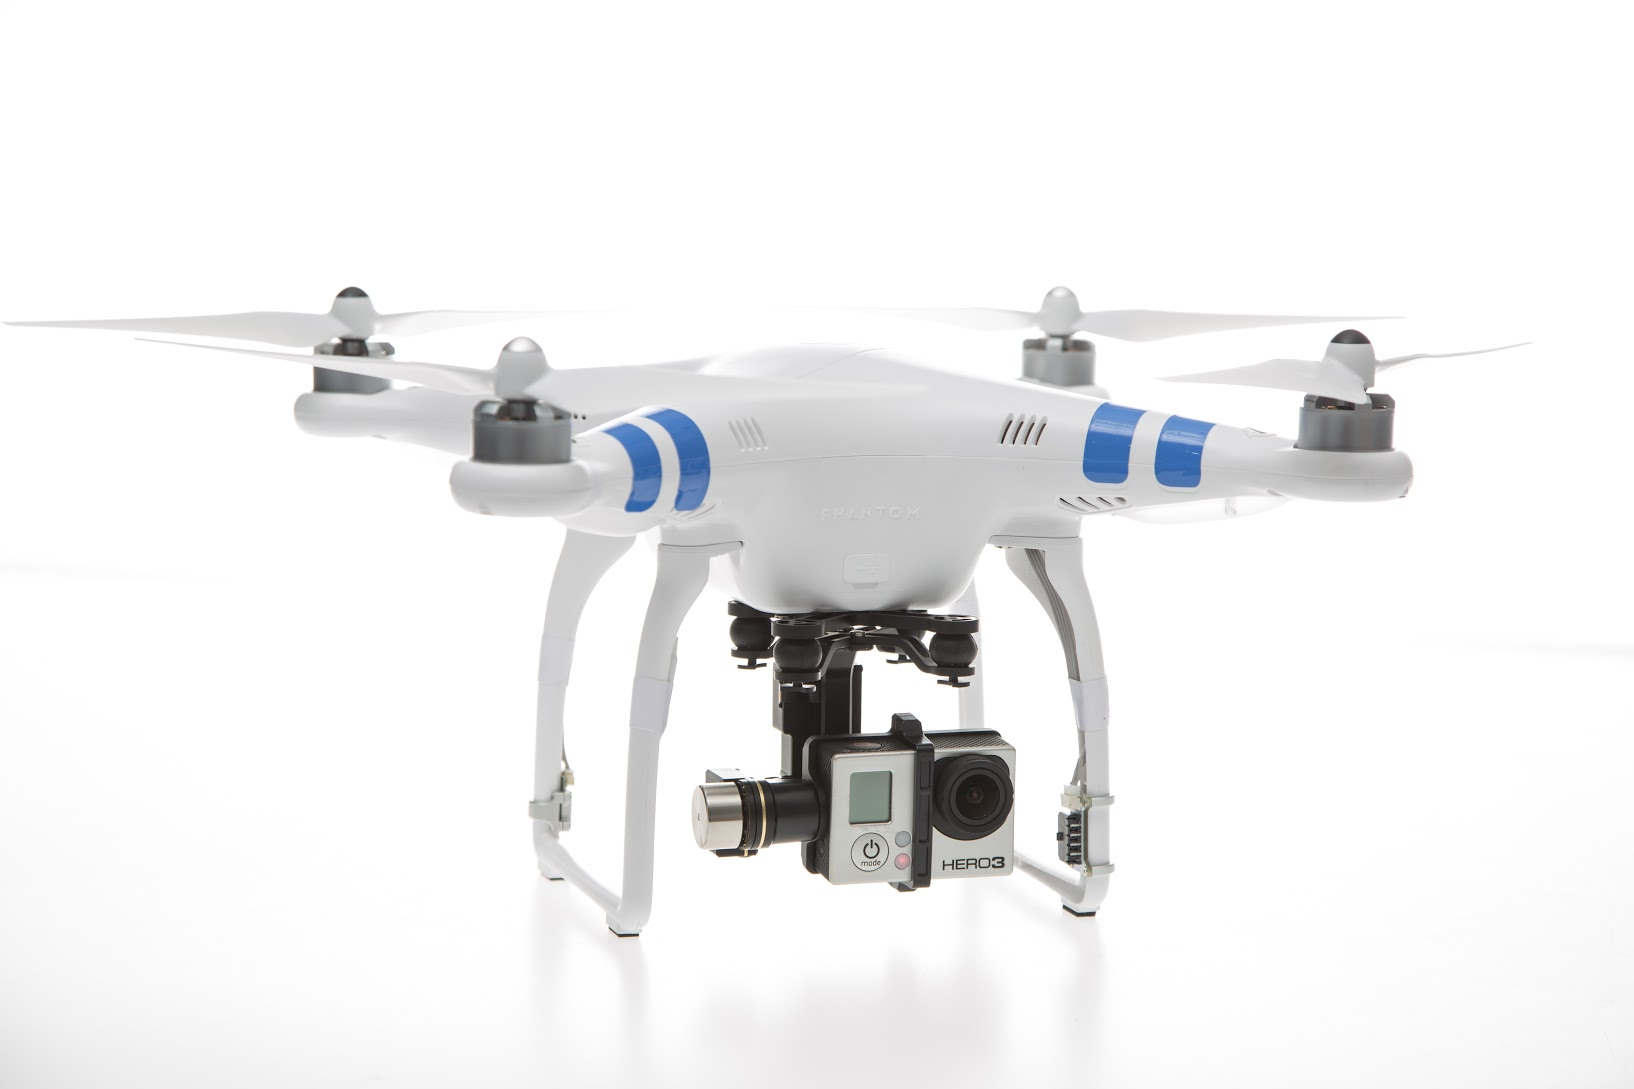 flying drones jobs with Dji Phantom 2 Film Extreme Sports on Drones additionally 3dr Launches 999 Solo The Smart Drone in addition S 100 aesa furthermore Drones Aerial Photography For Real Estate further Duke Unveils Guidelines C us Drone Use.